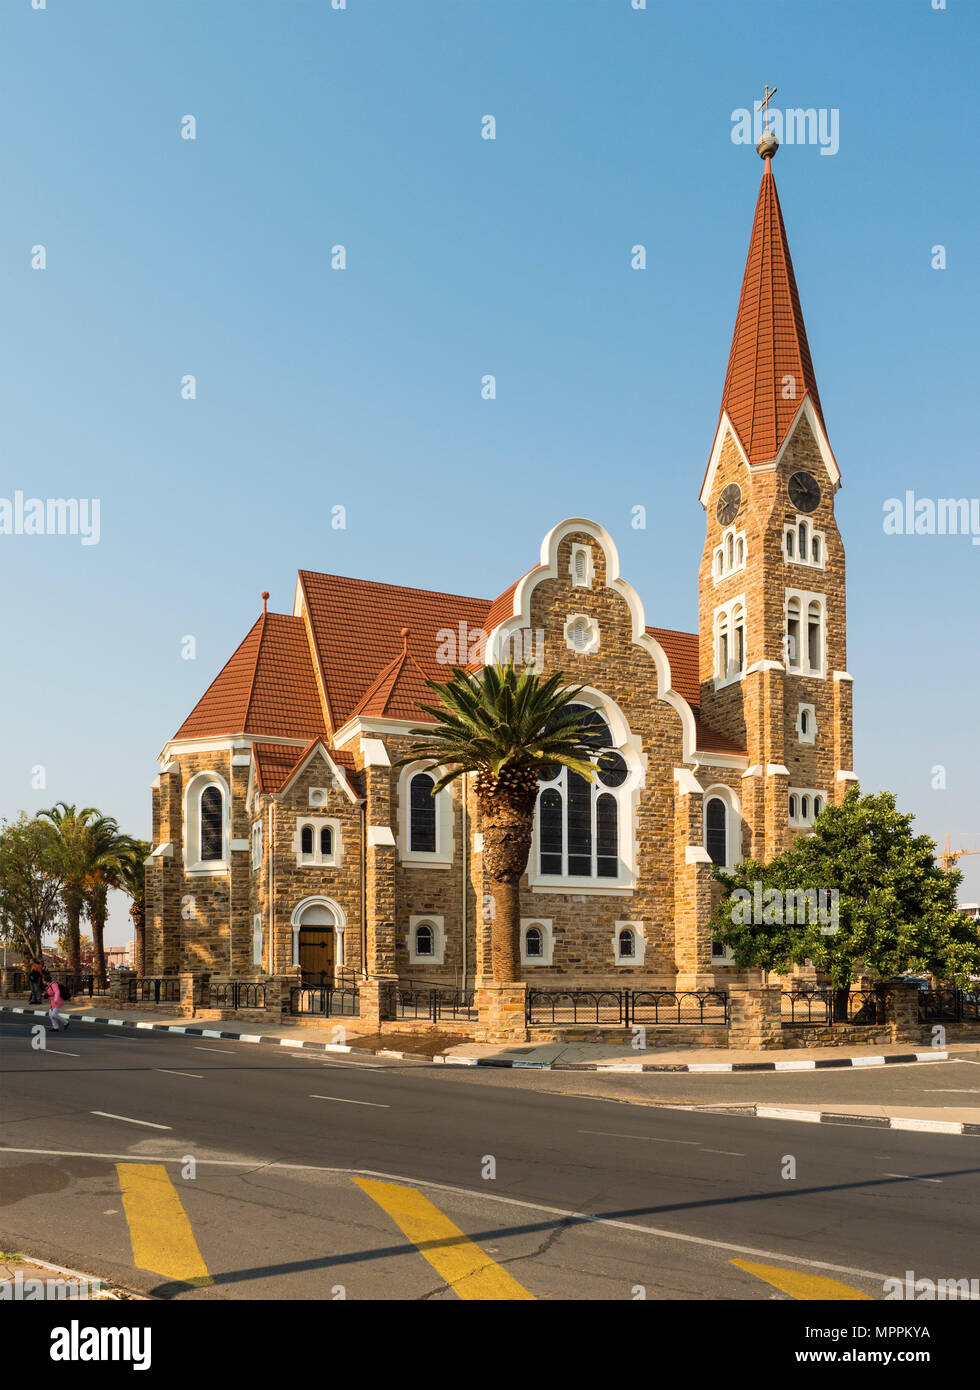 Africa, Namibia, Windhoek, Christ Church - Stock Image